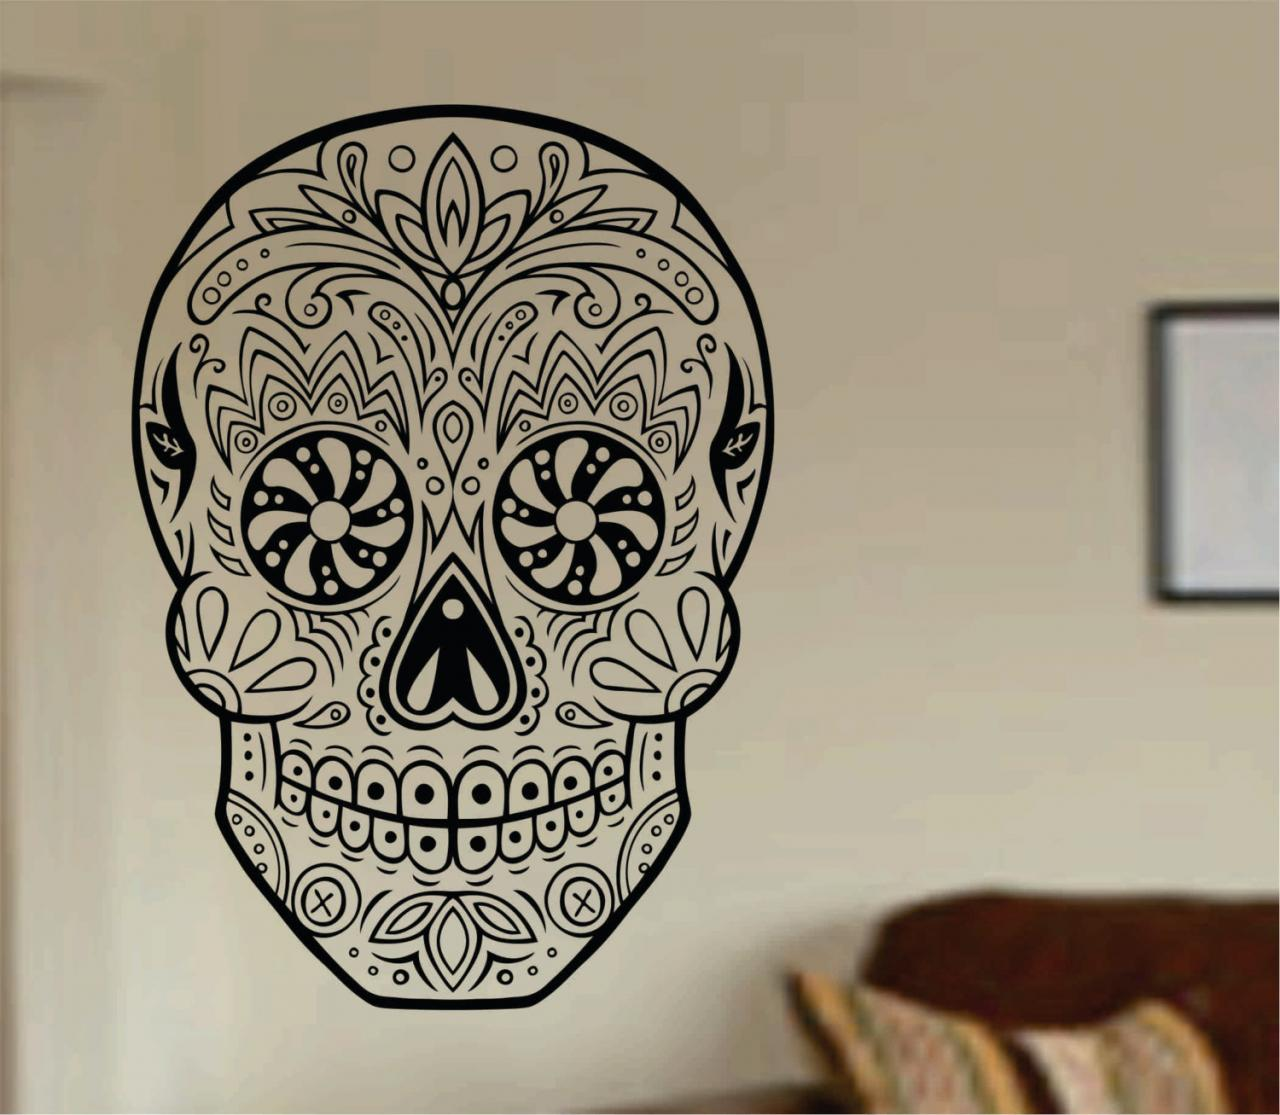 Sugar Skull Version 20 Wall Vinyl Decal Sticker Art Graphic Sticker Sugar Skull Sugarskull